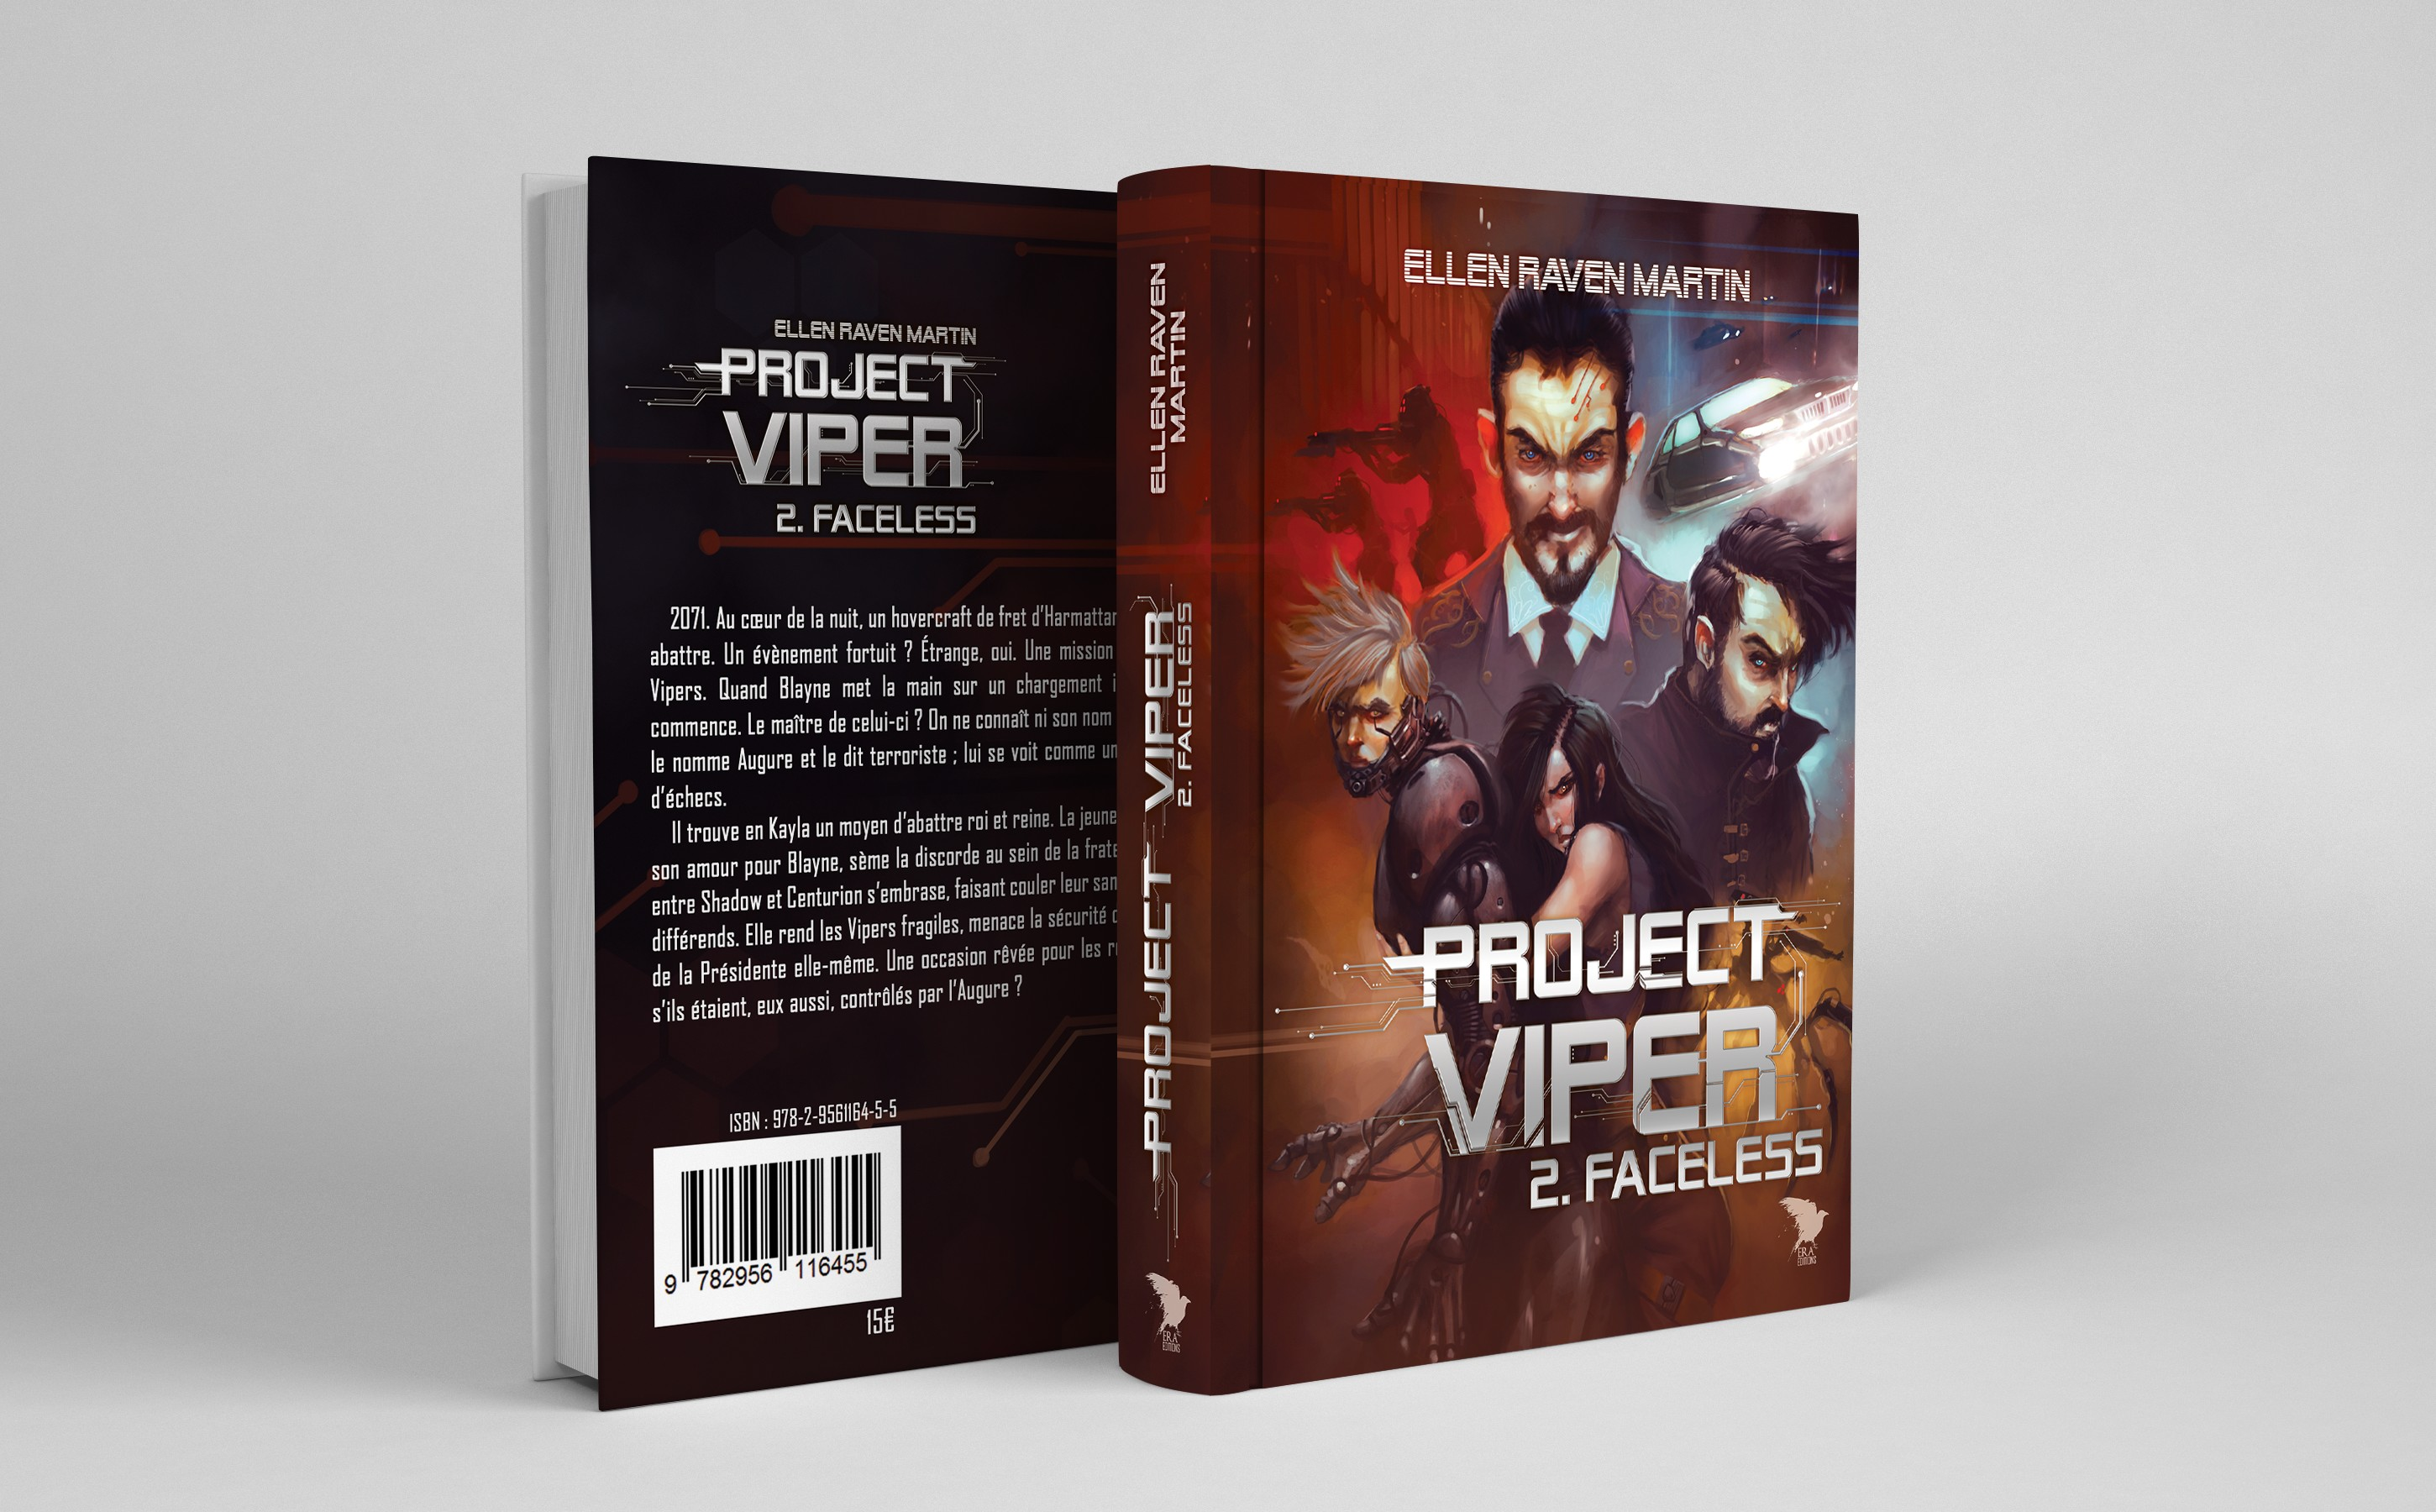 Project Viper - Faceless